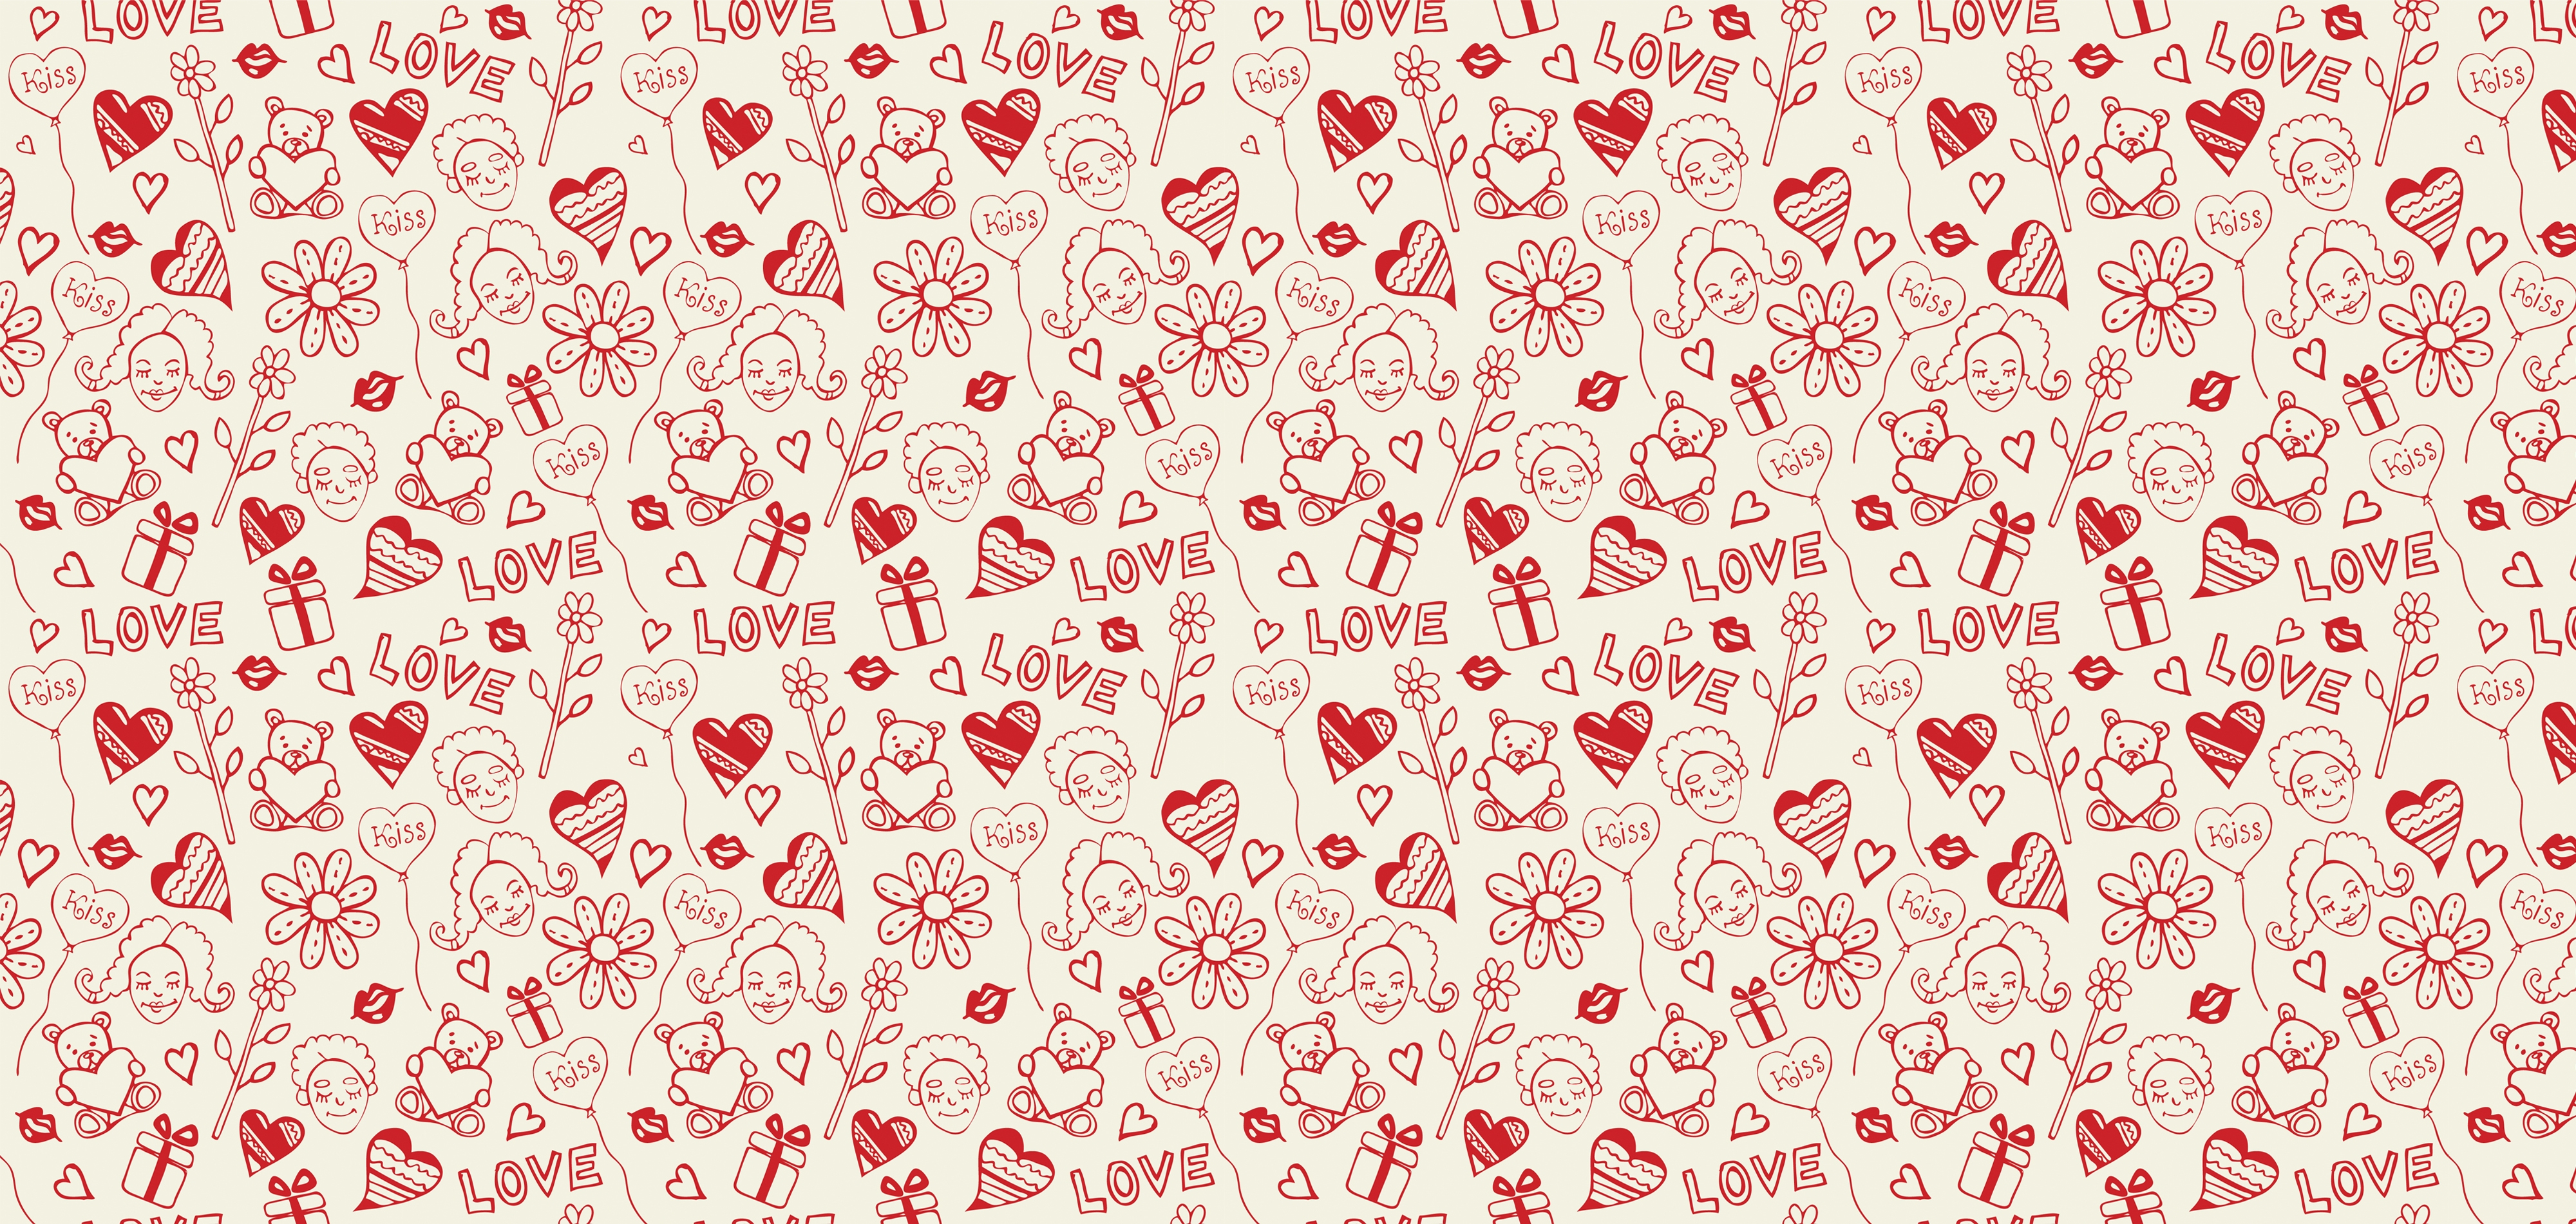 Wallpaper Design pattern about hearts, balloons, flowers, kisses, bears and gifts